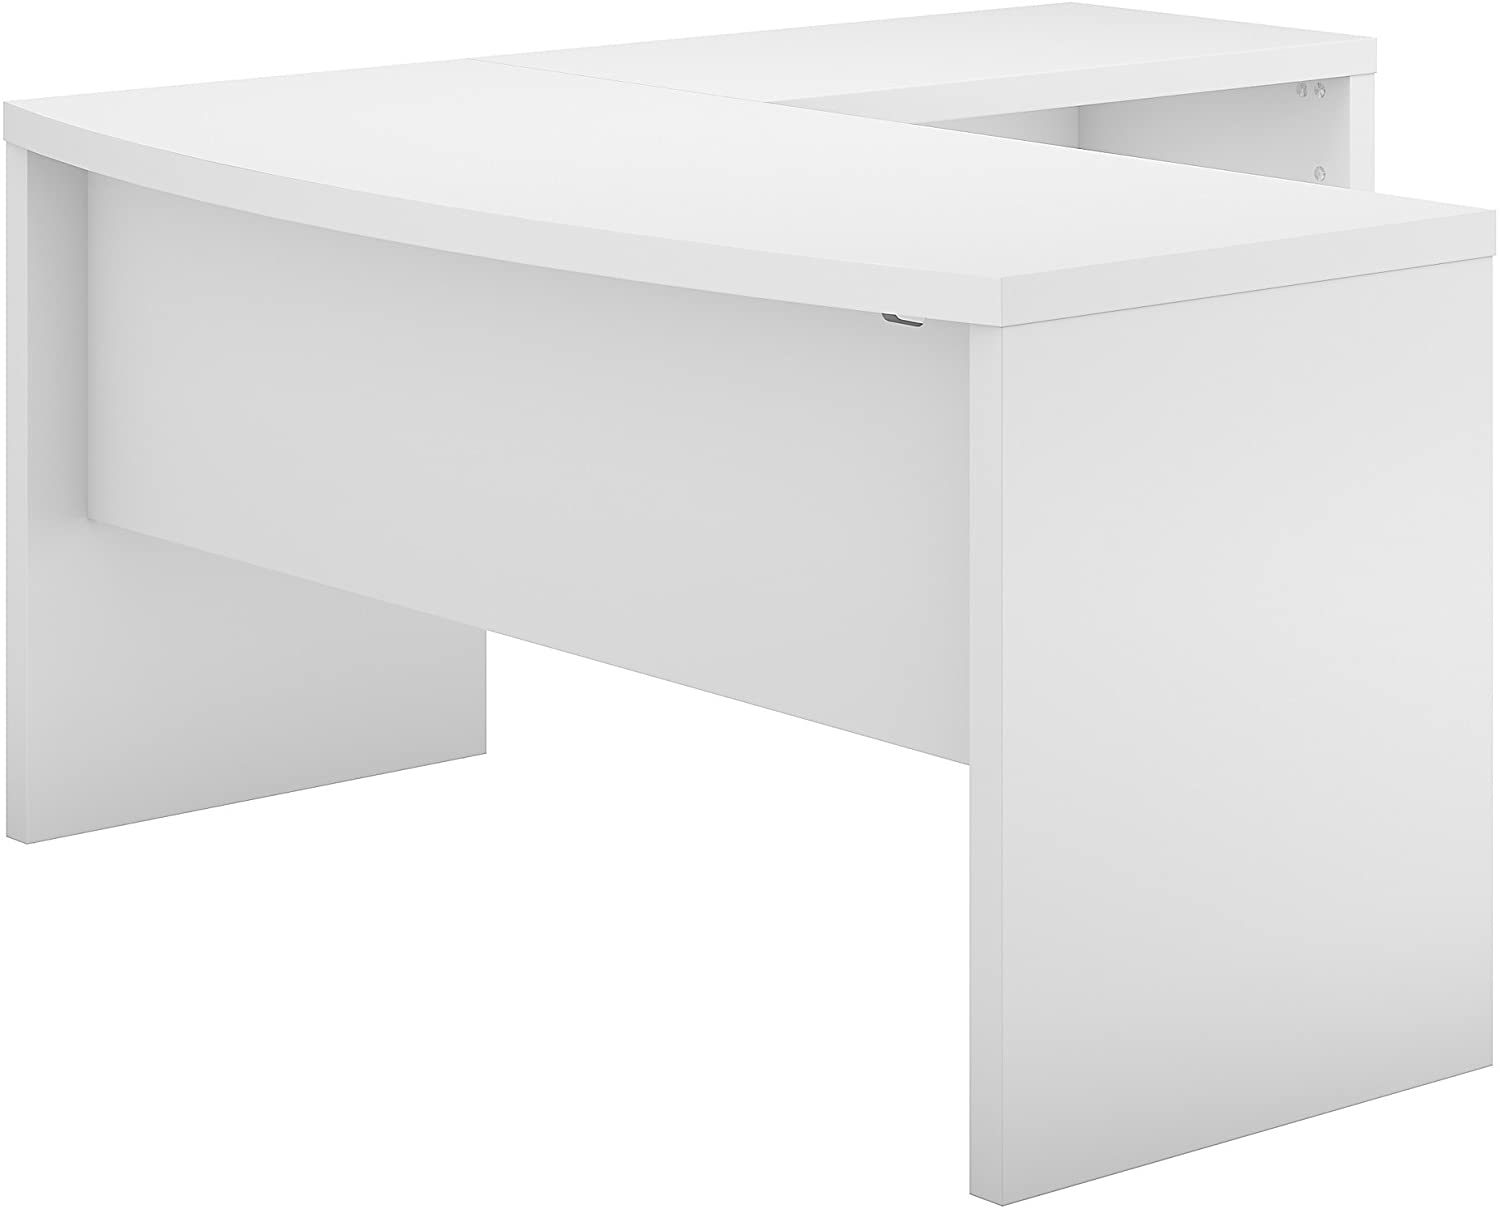 Bush Business Furniture Office by kathy ireland Echo L Shaped Bow Front Desk, Pure White